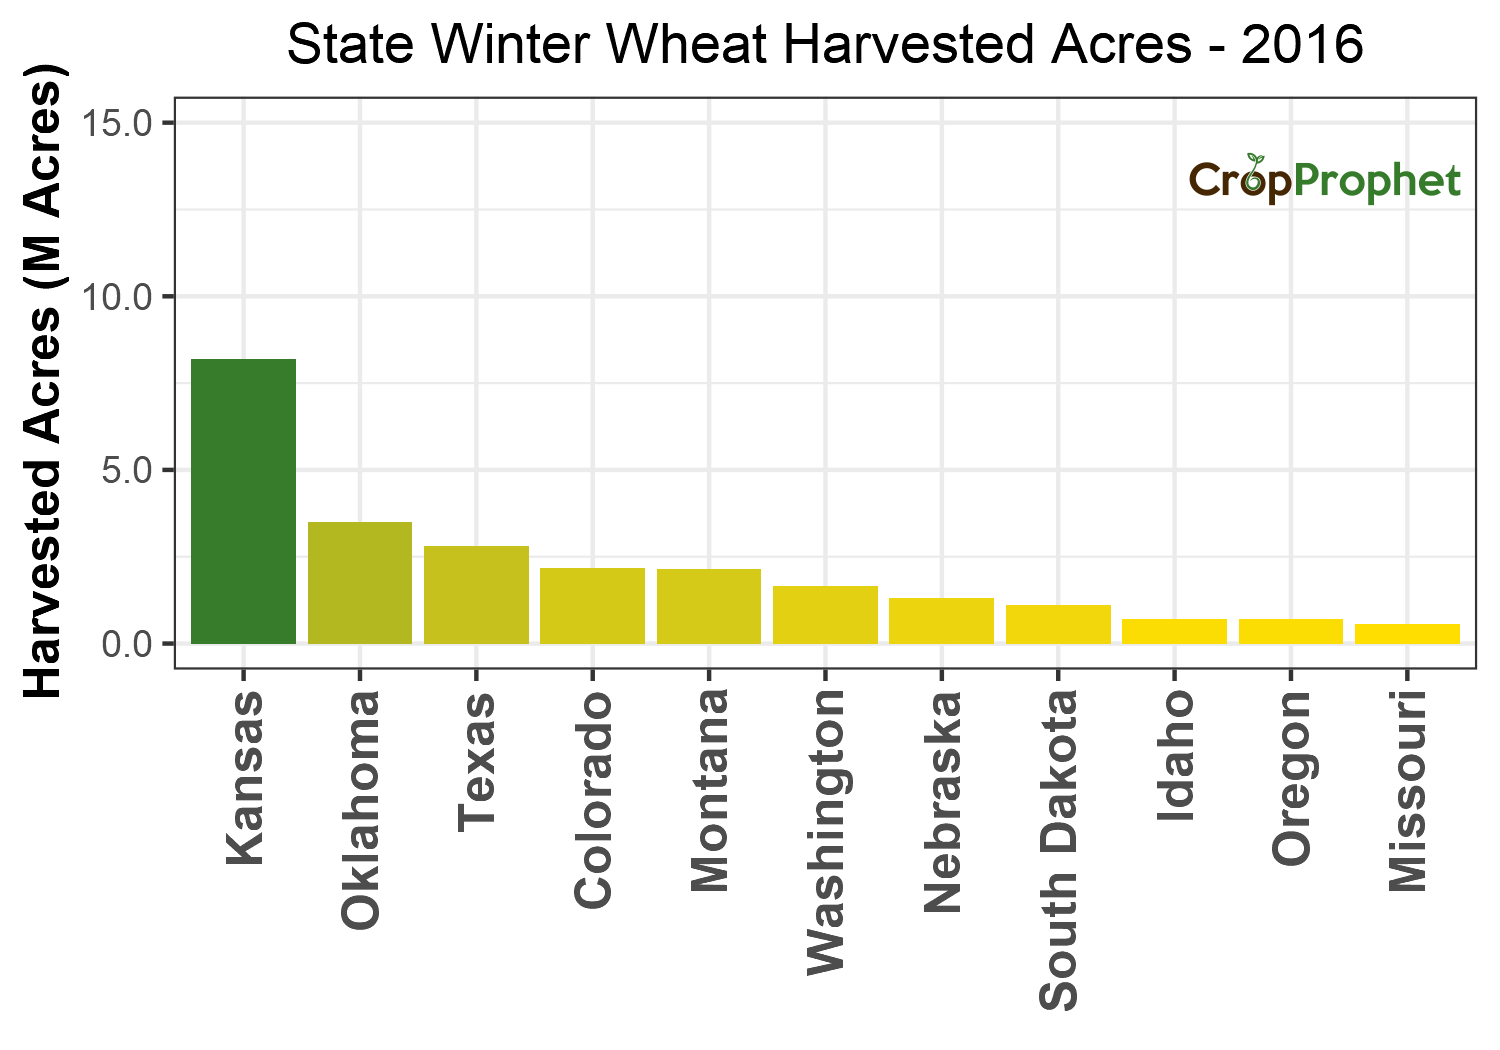 Winter wheat Harvested Acres by State - 2016 Rankings